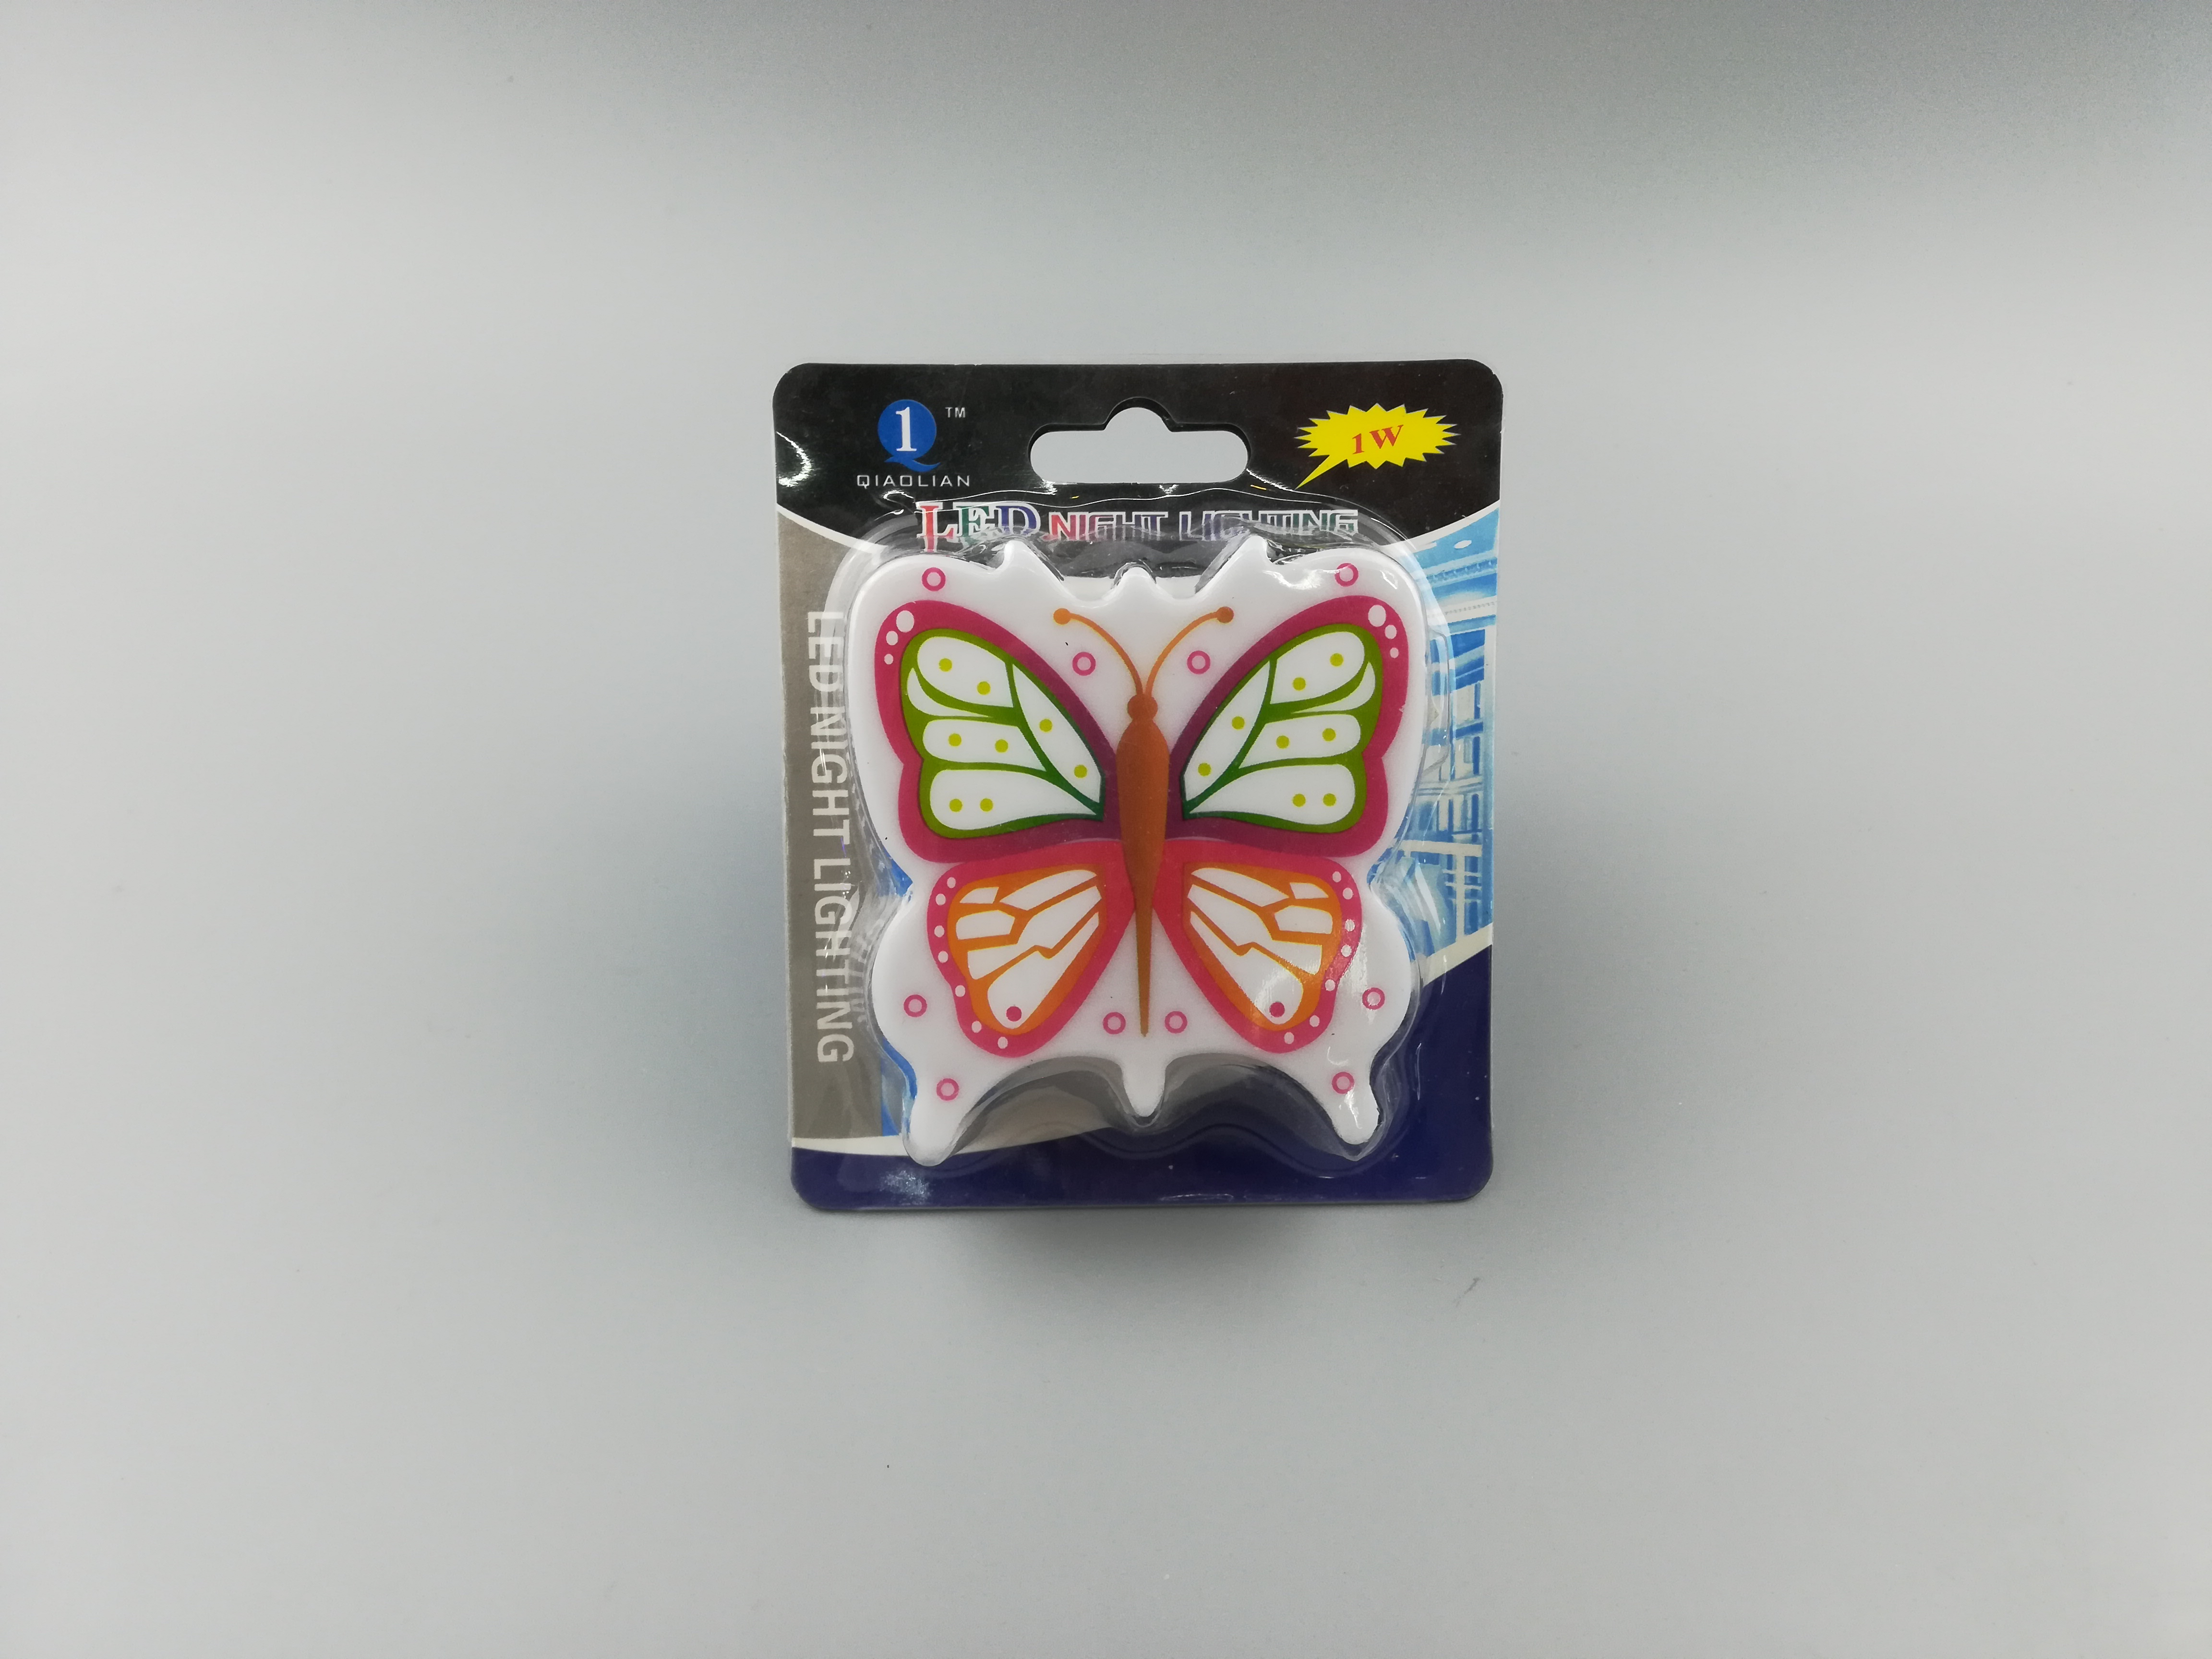 OEM W058 butterfly shape 4 SMD mini switch plug in night light with 0.6W 3SMD AC 110V or 220V